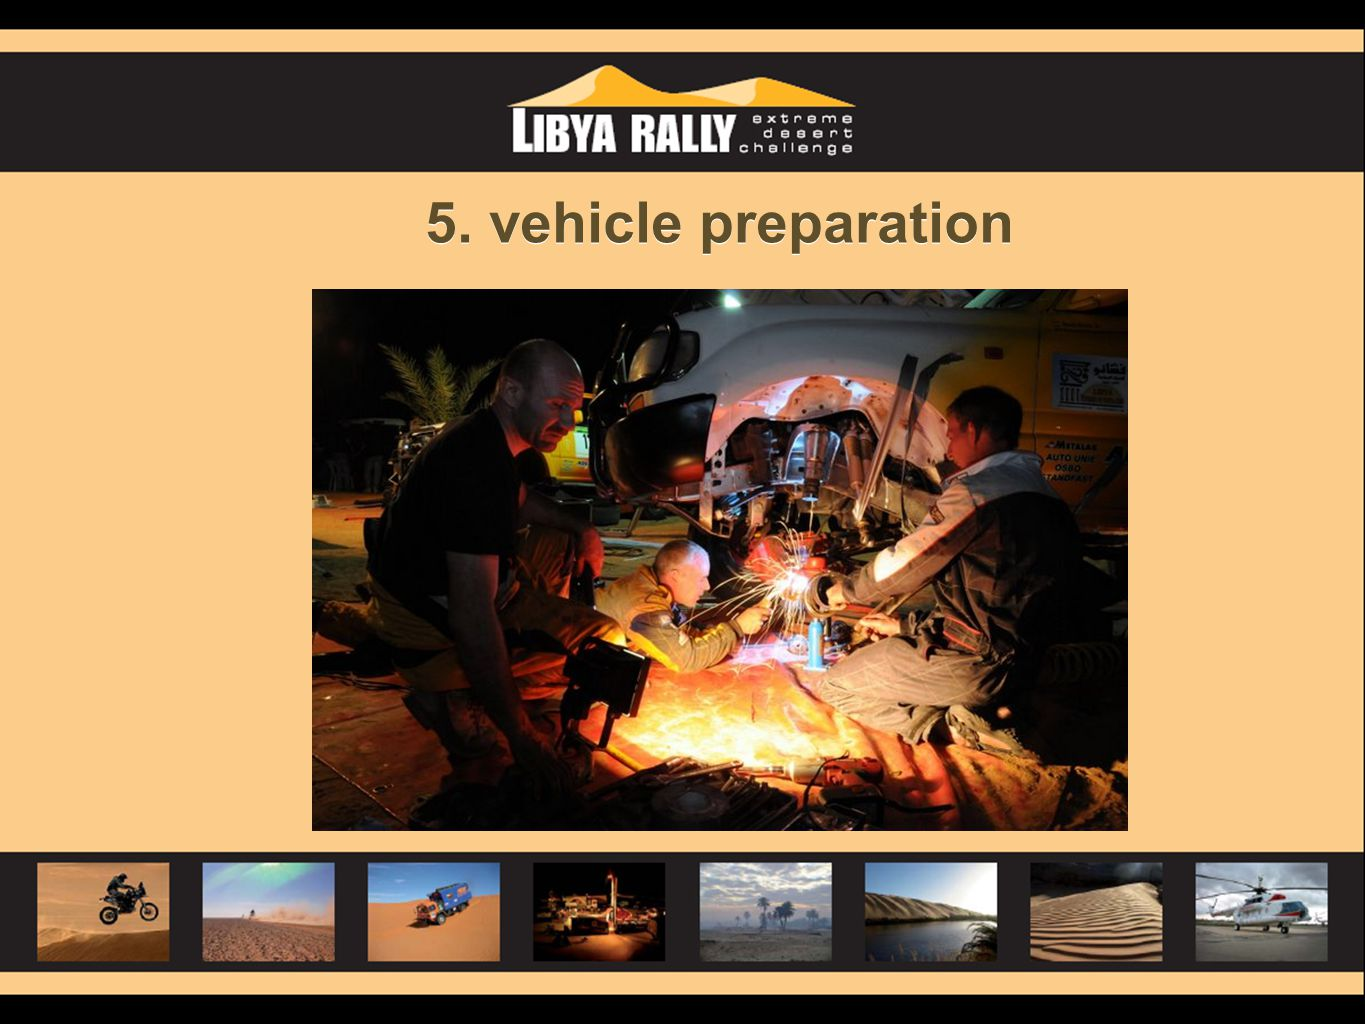 5. vehicle preparation